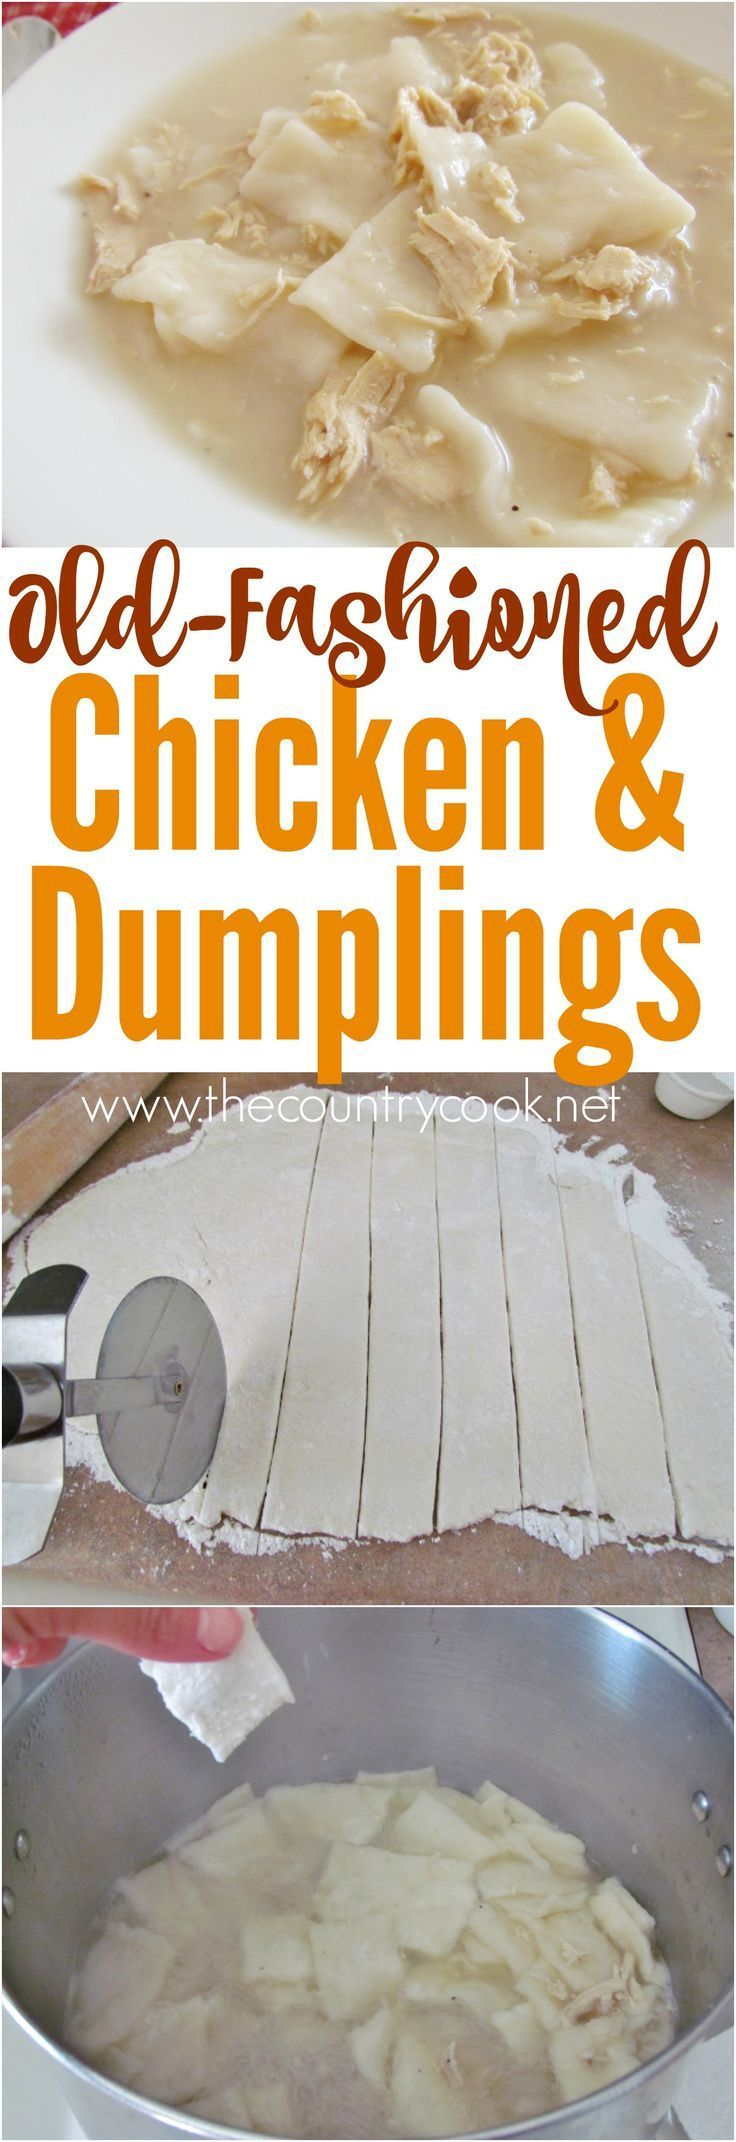 nice Old-Fashioned Chicken & Dumplings recipe from The Country Cook              ...by http://dezdemooncooking4u.gdn